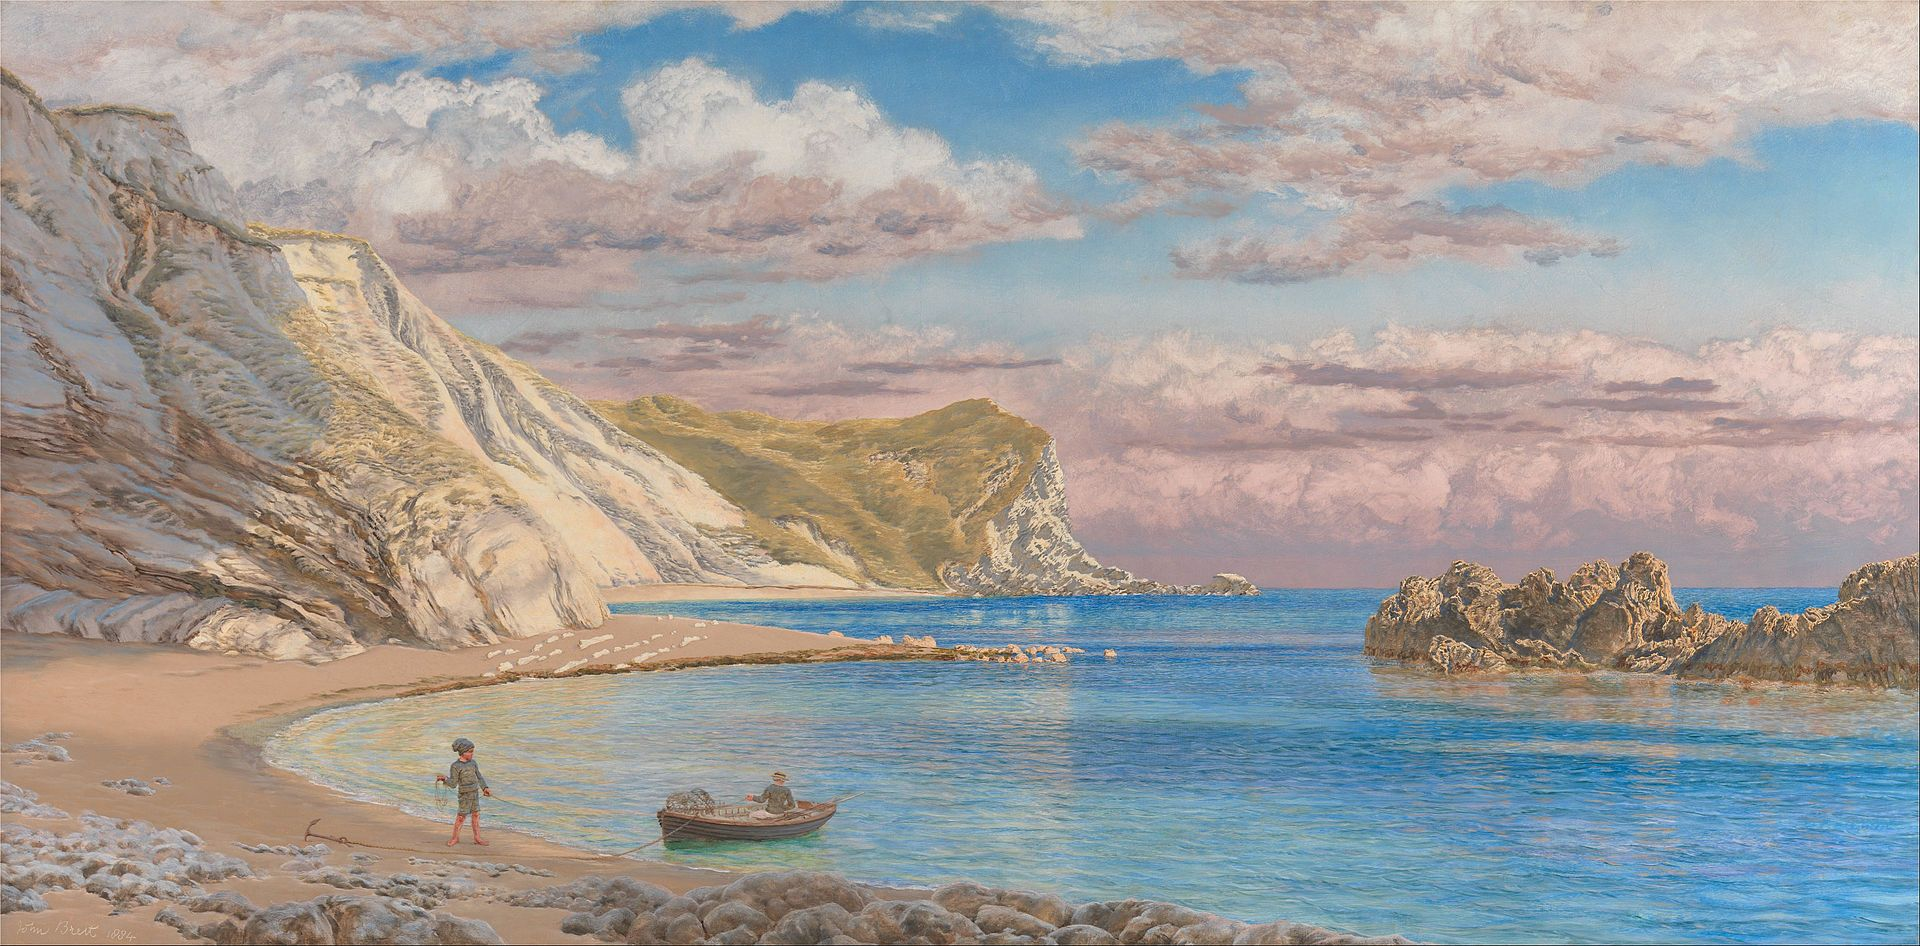 John Brett - Man of War Rocks, Coast of Dorset - Google Art Project - John Brett (artist) - Wikipedia, the free encyclopedia